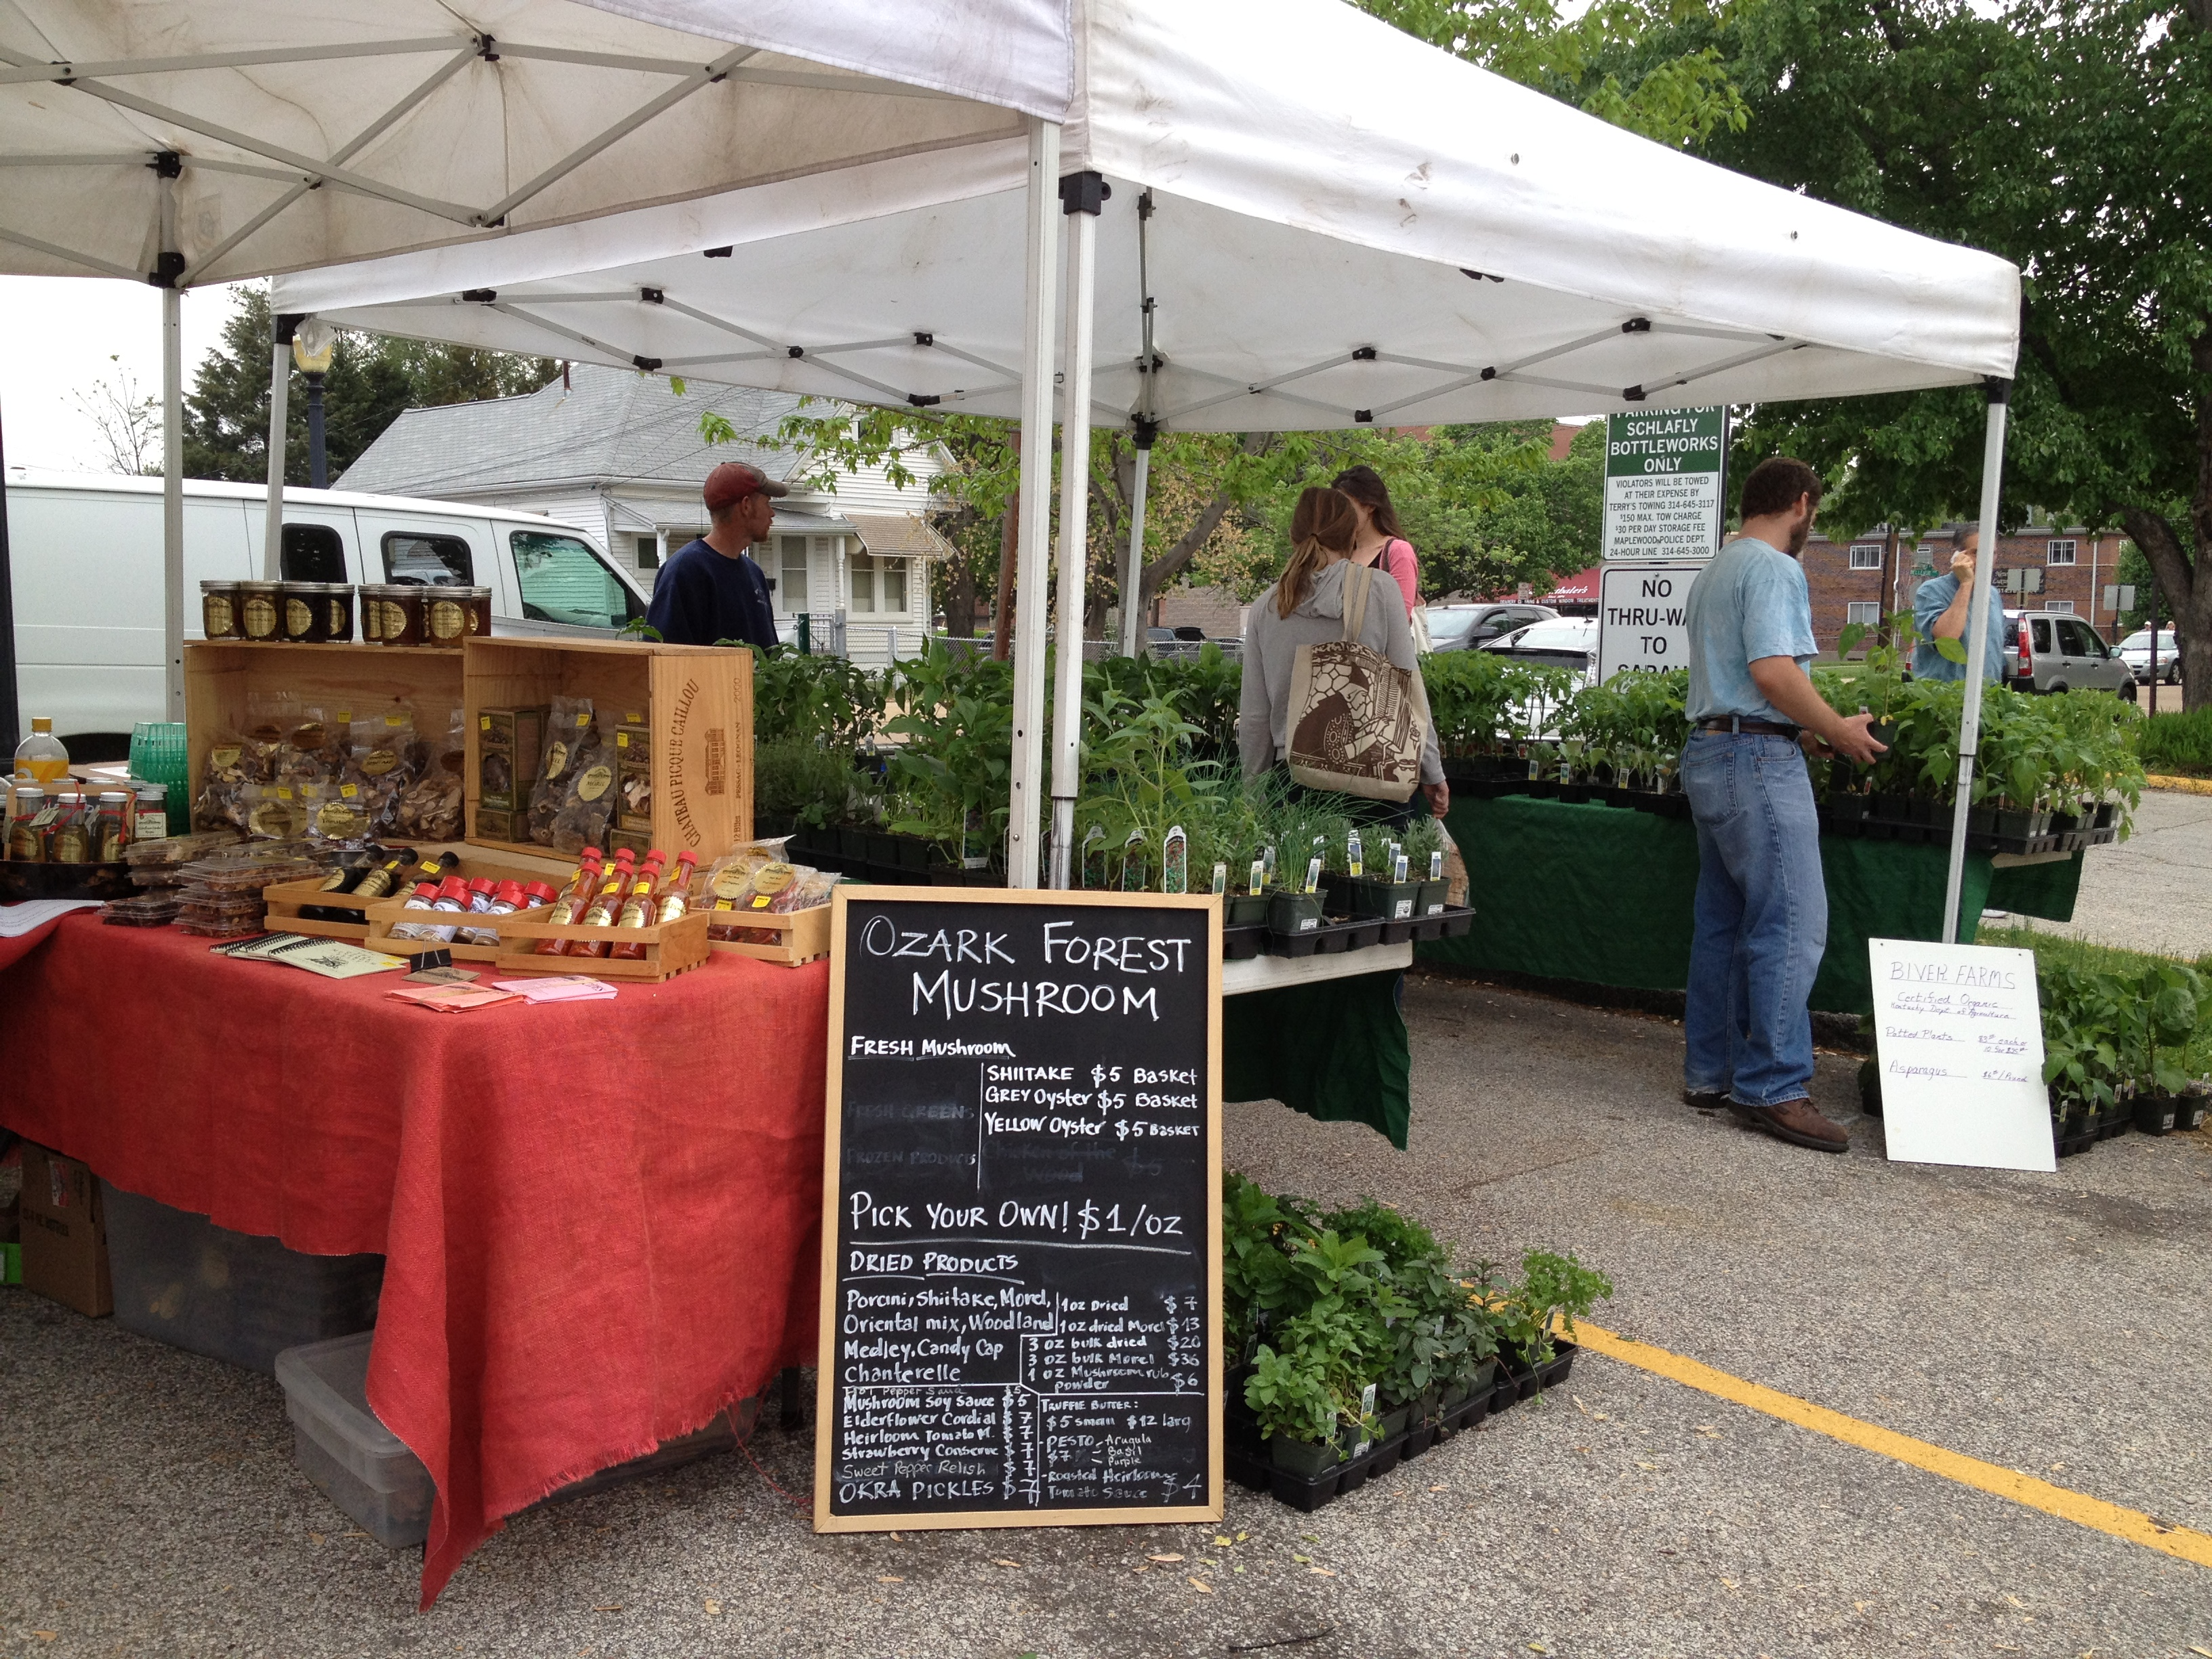 Farmers Market at Schlaflyu0027s St. Louis & Opening Day in St. Louis for Baseball u0026 Farmers Market | JP loves ...